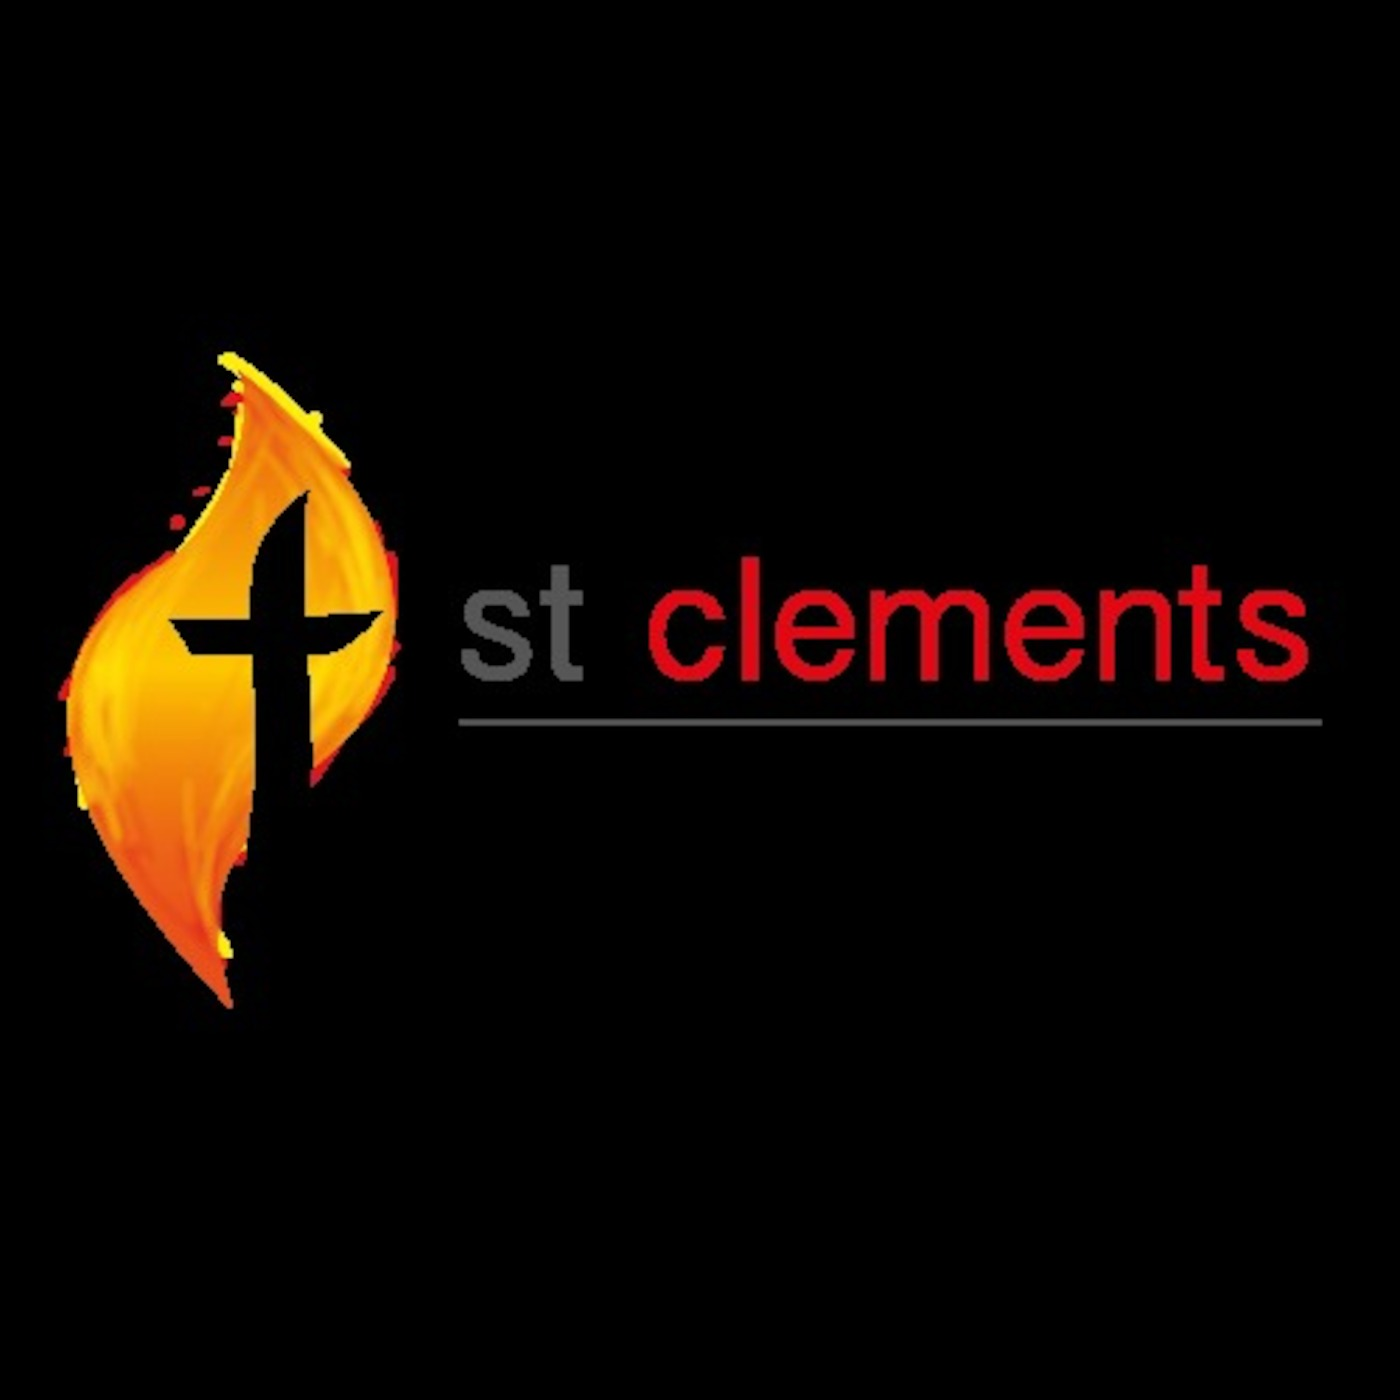 St Clements Kingston Podcast